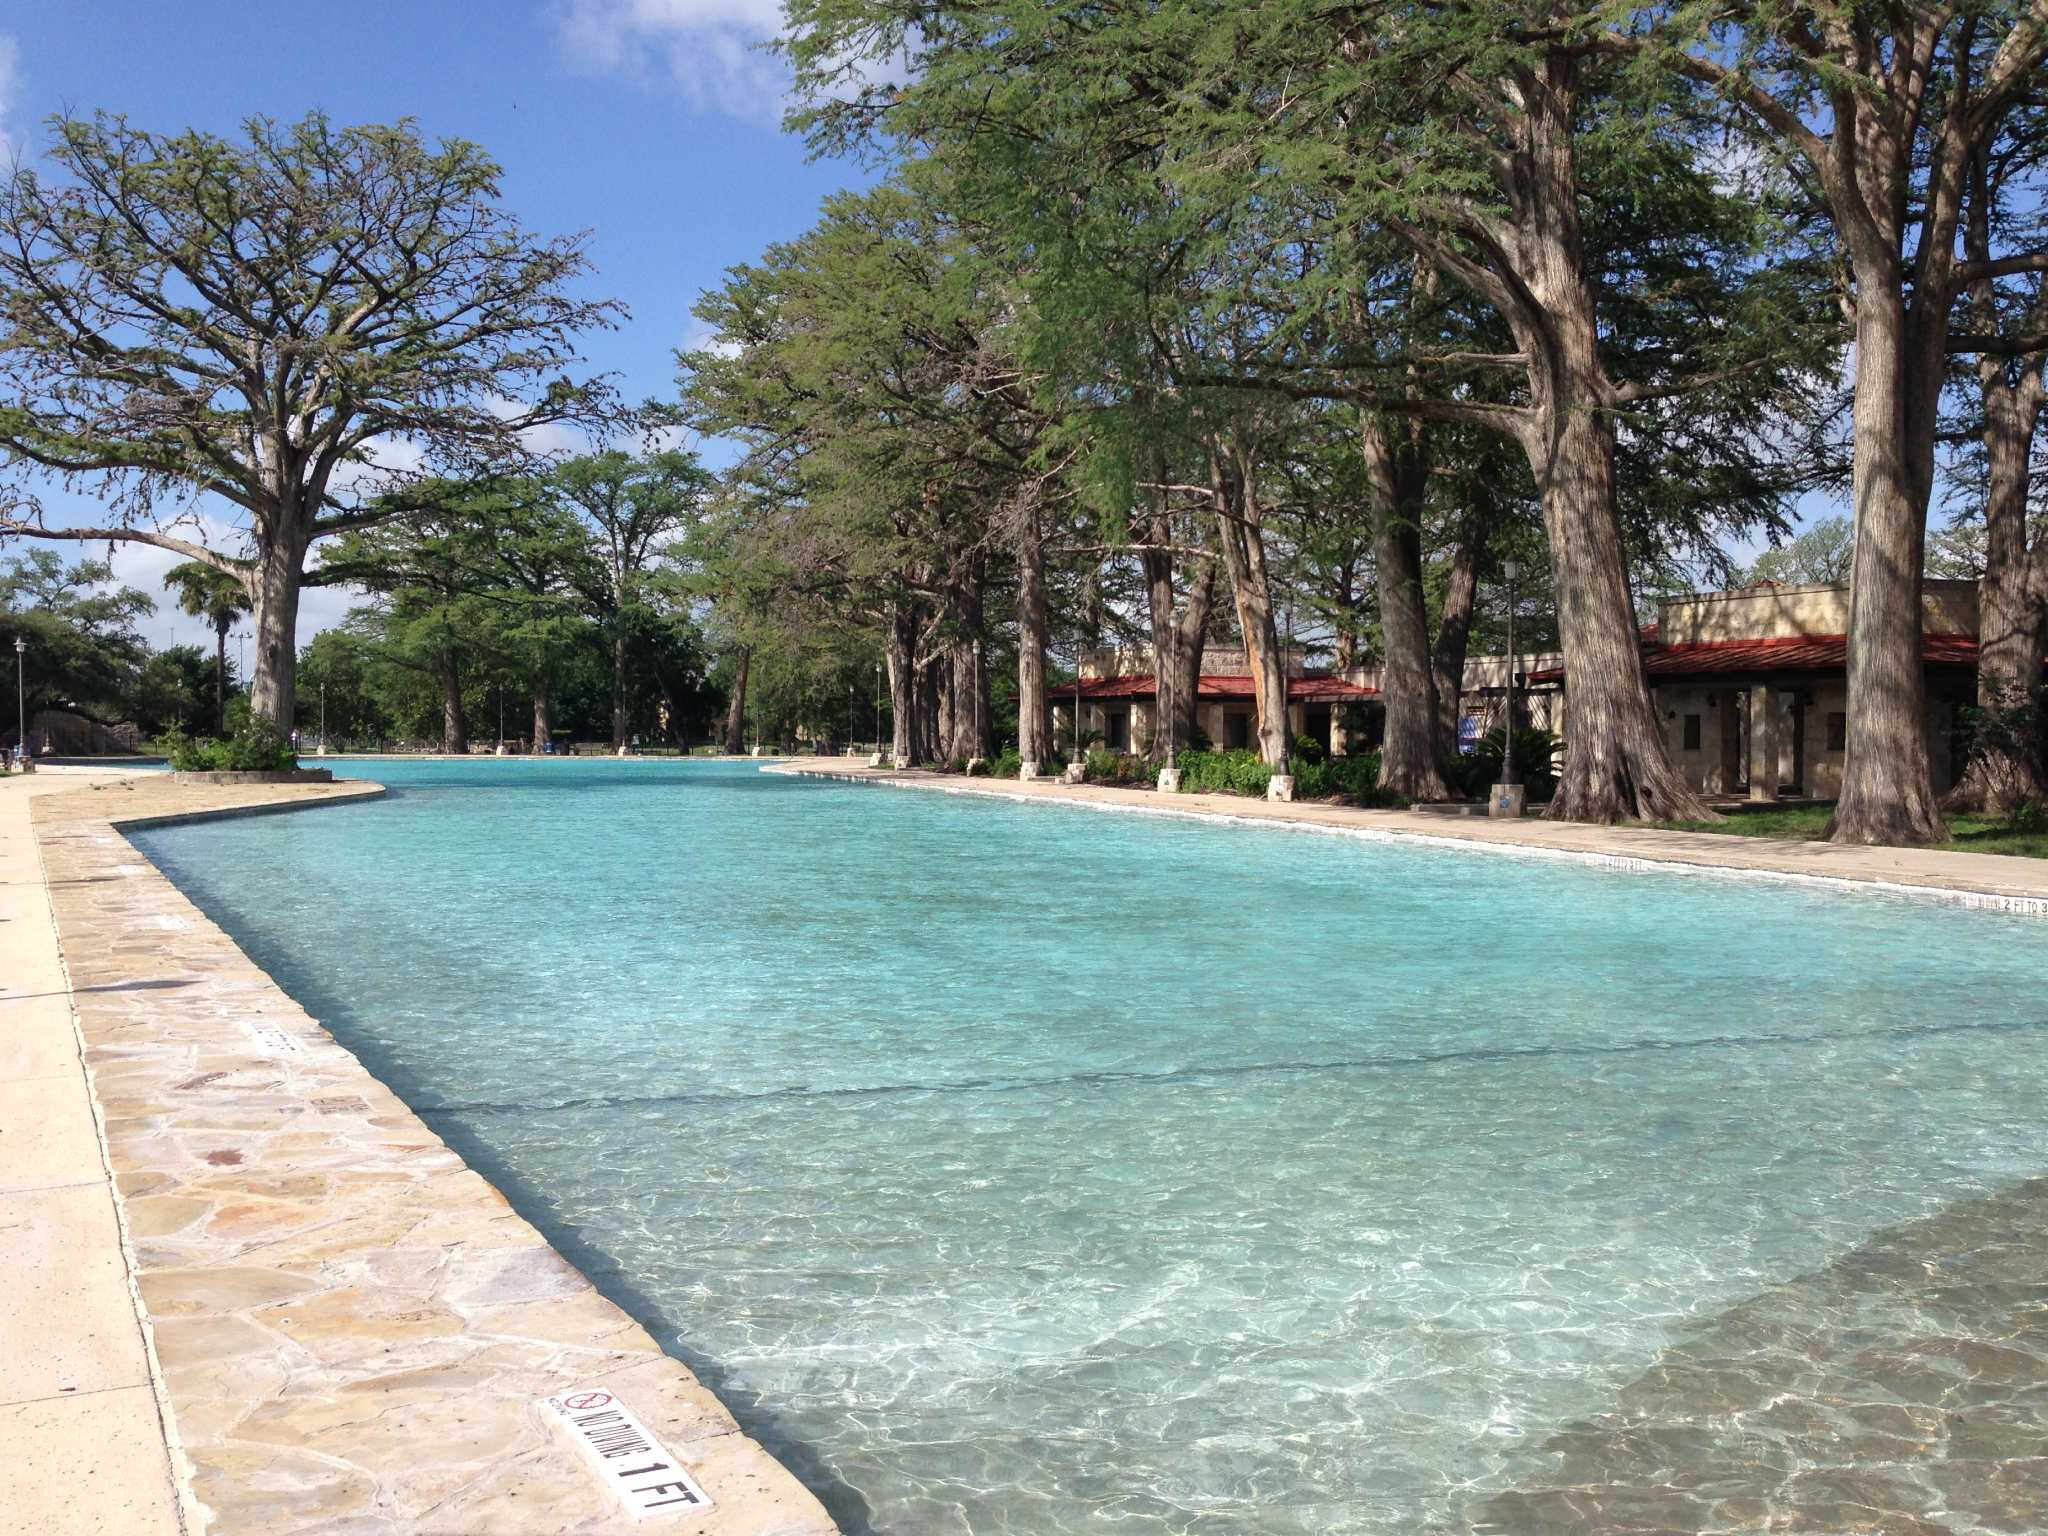 Dive in city swimming pools open for summer san antonio - Swimming pools in san antonio texas ...